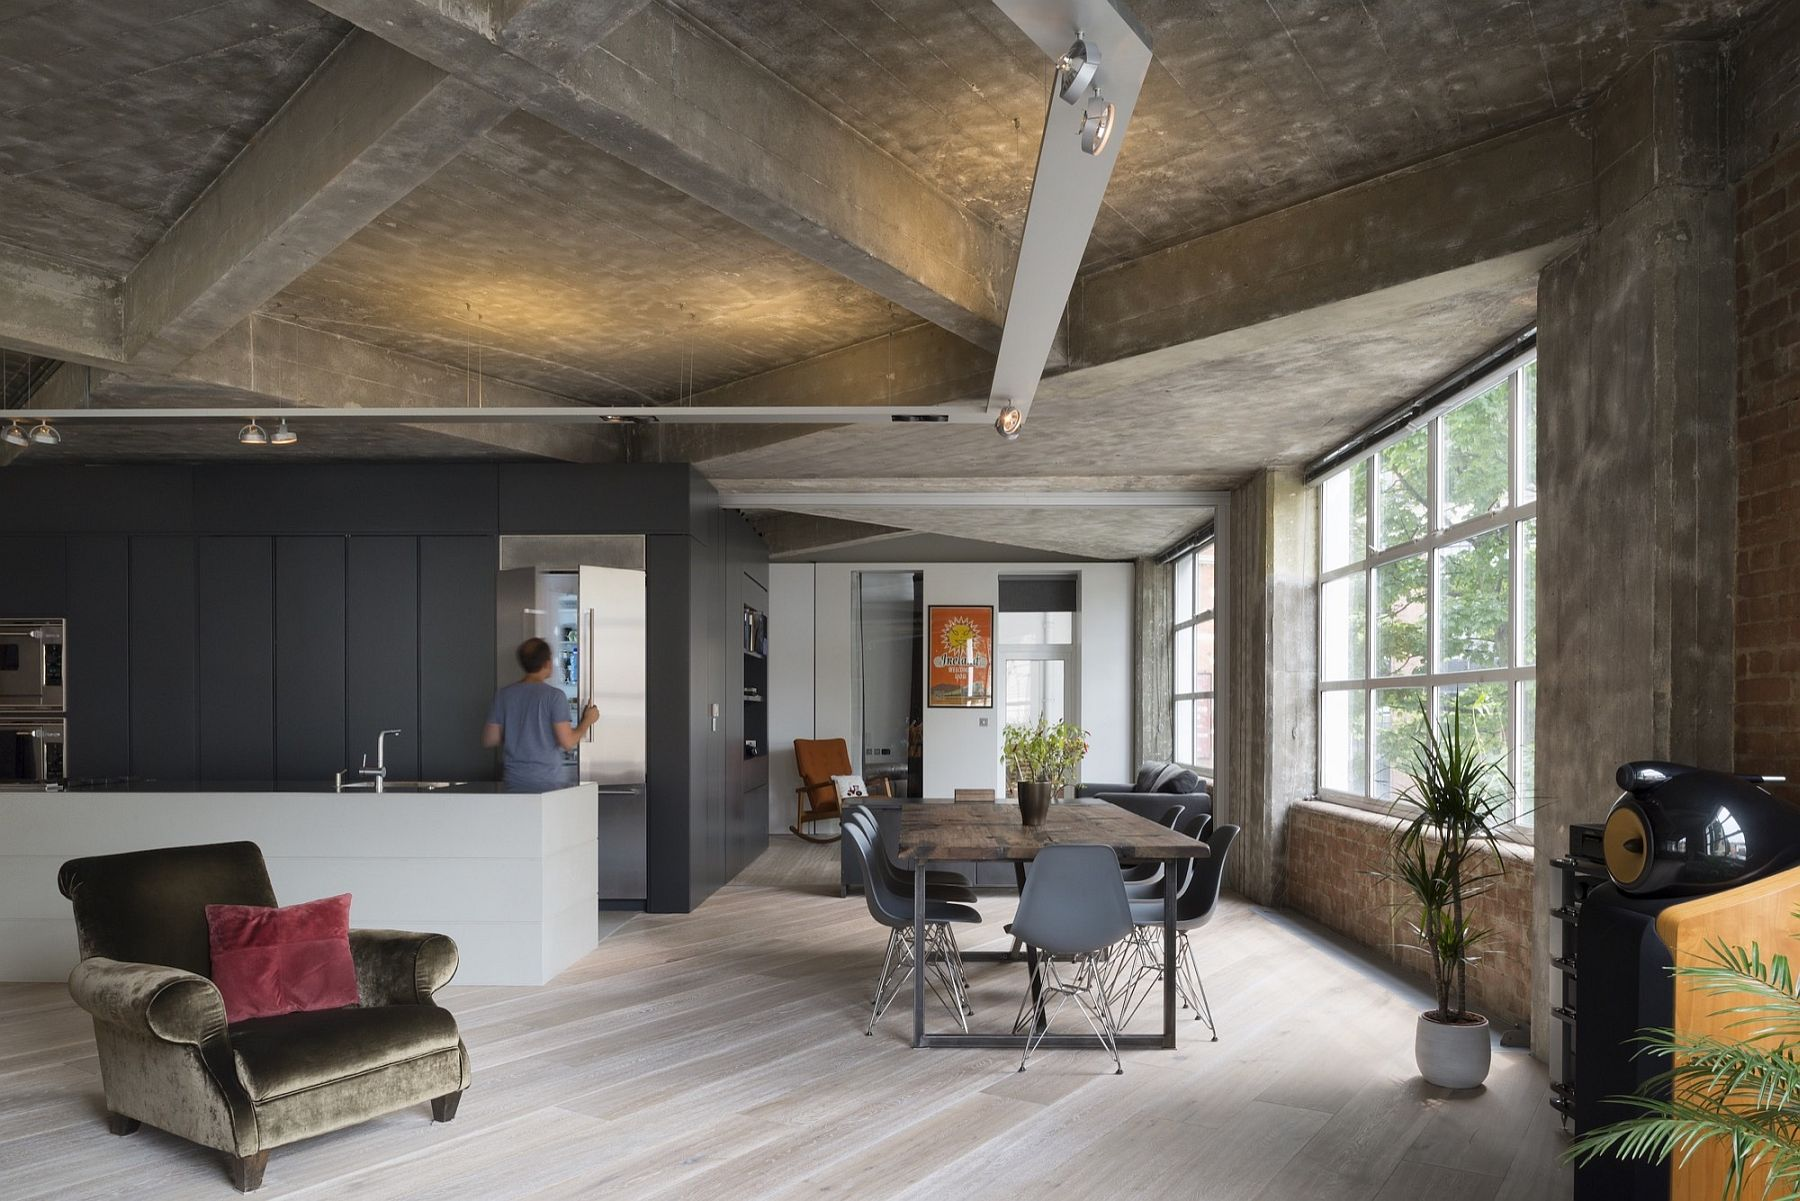 Stunningly transformed London loft draped in concrete and metal